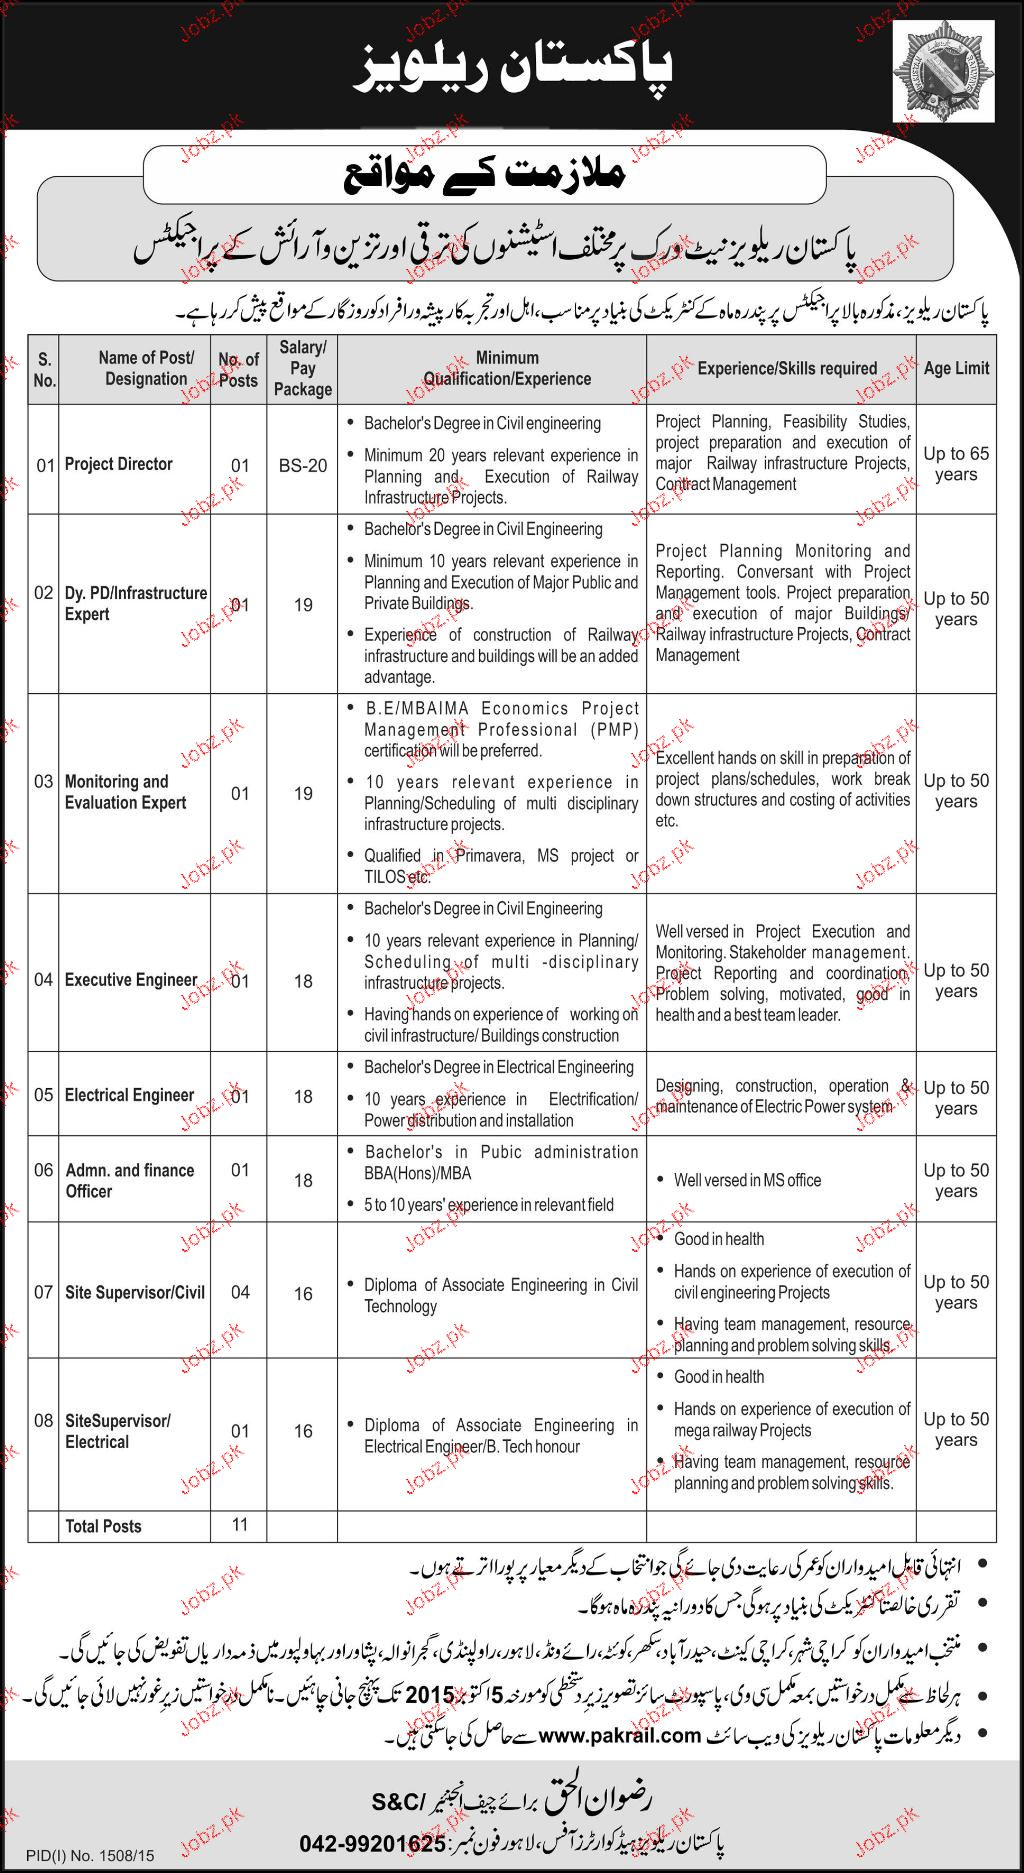 Project Director, Monitoring & Evaluation Experts Wanted